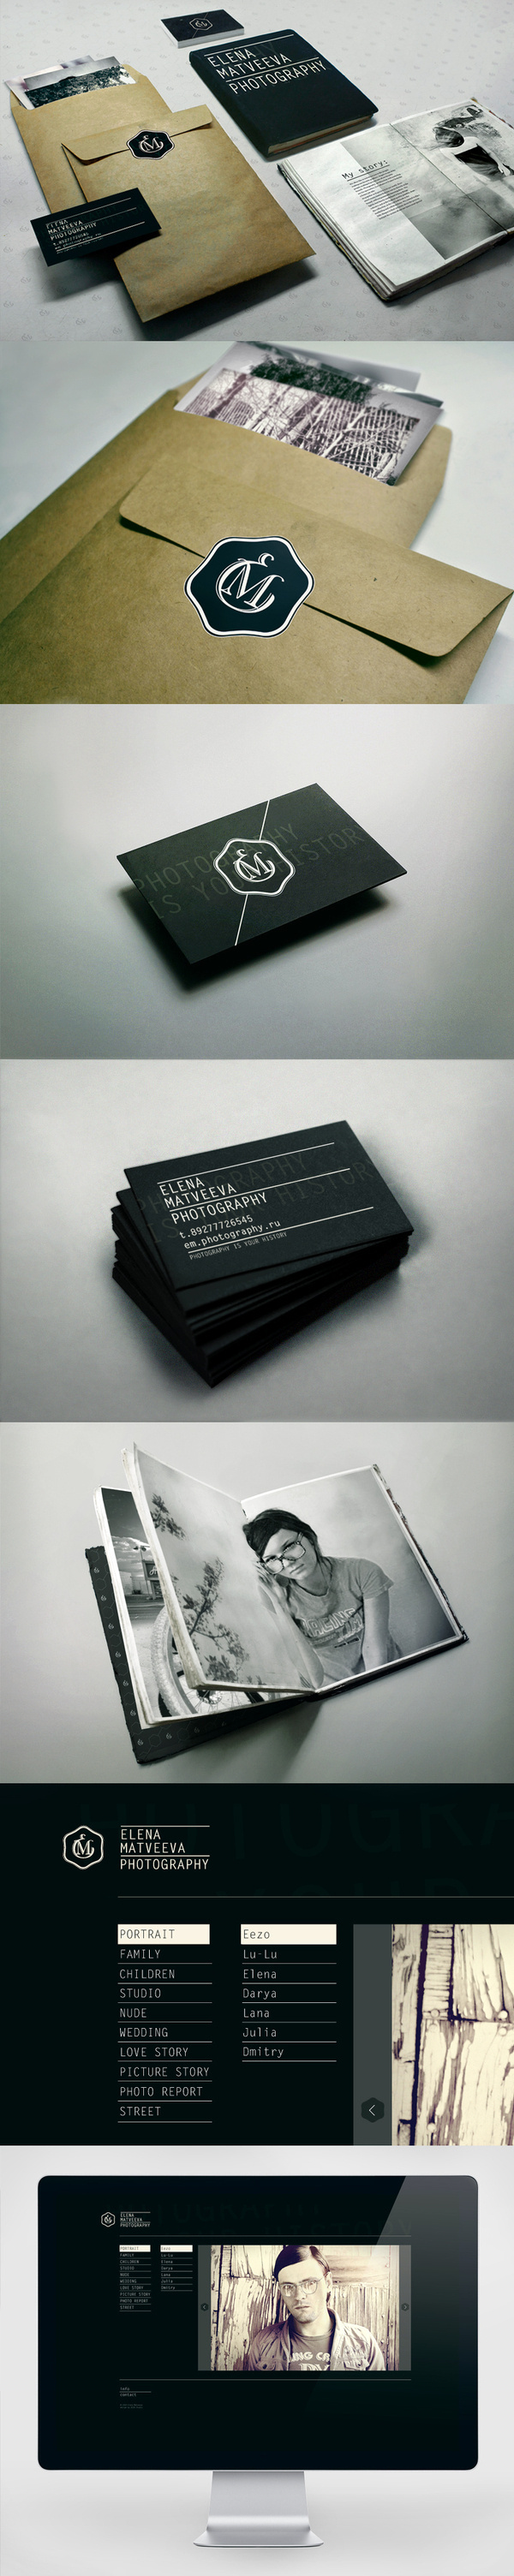 printing techniques // E.M. Photography on Branding Served #identity